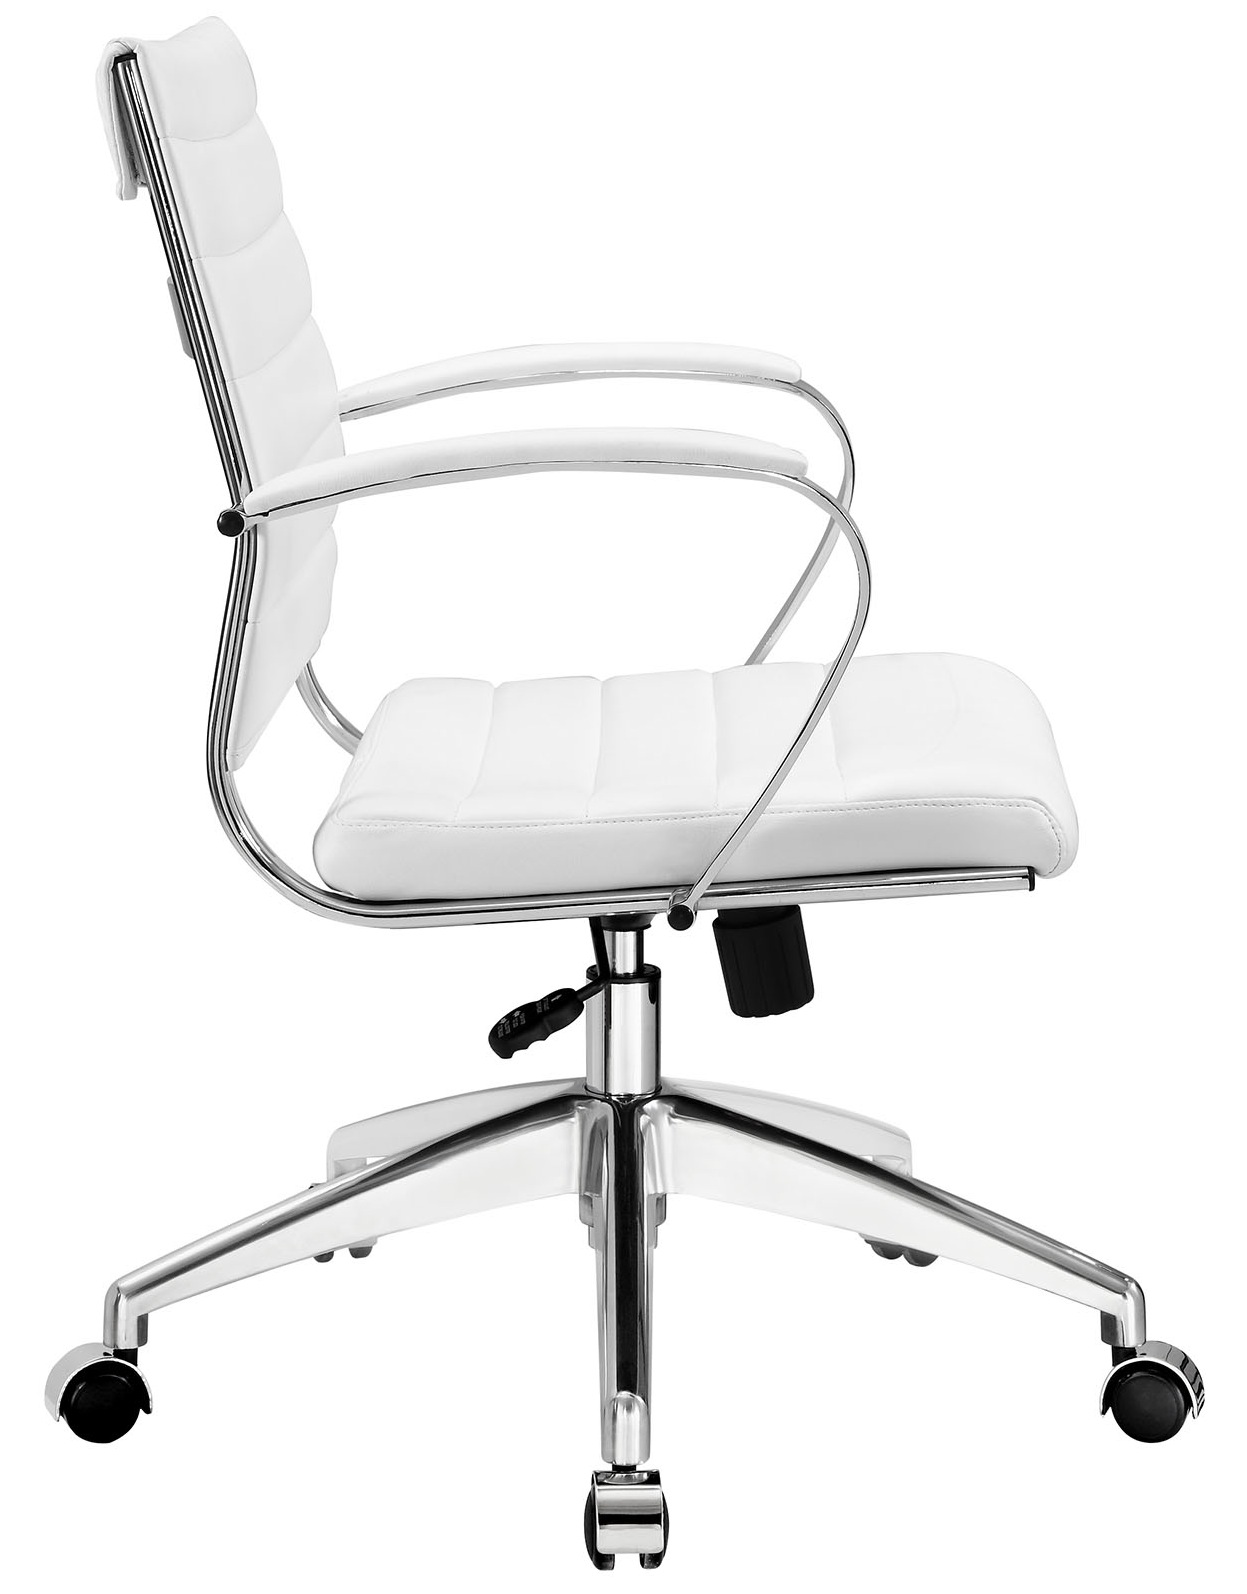 aria-chair-white.jpg